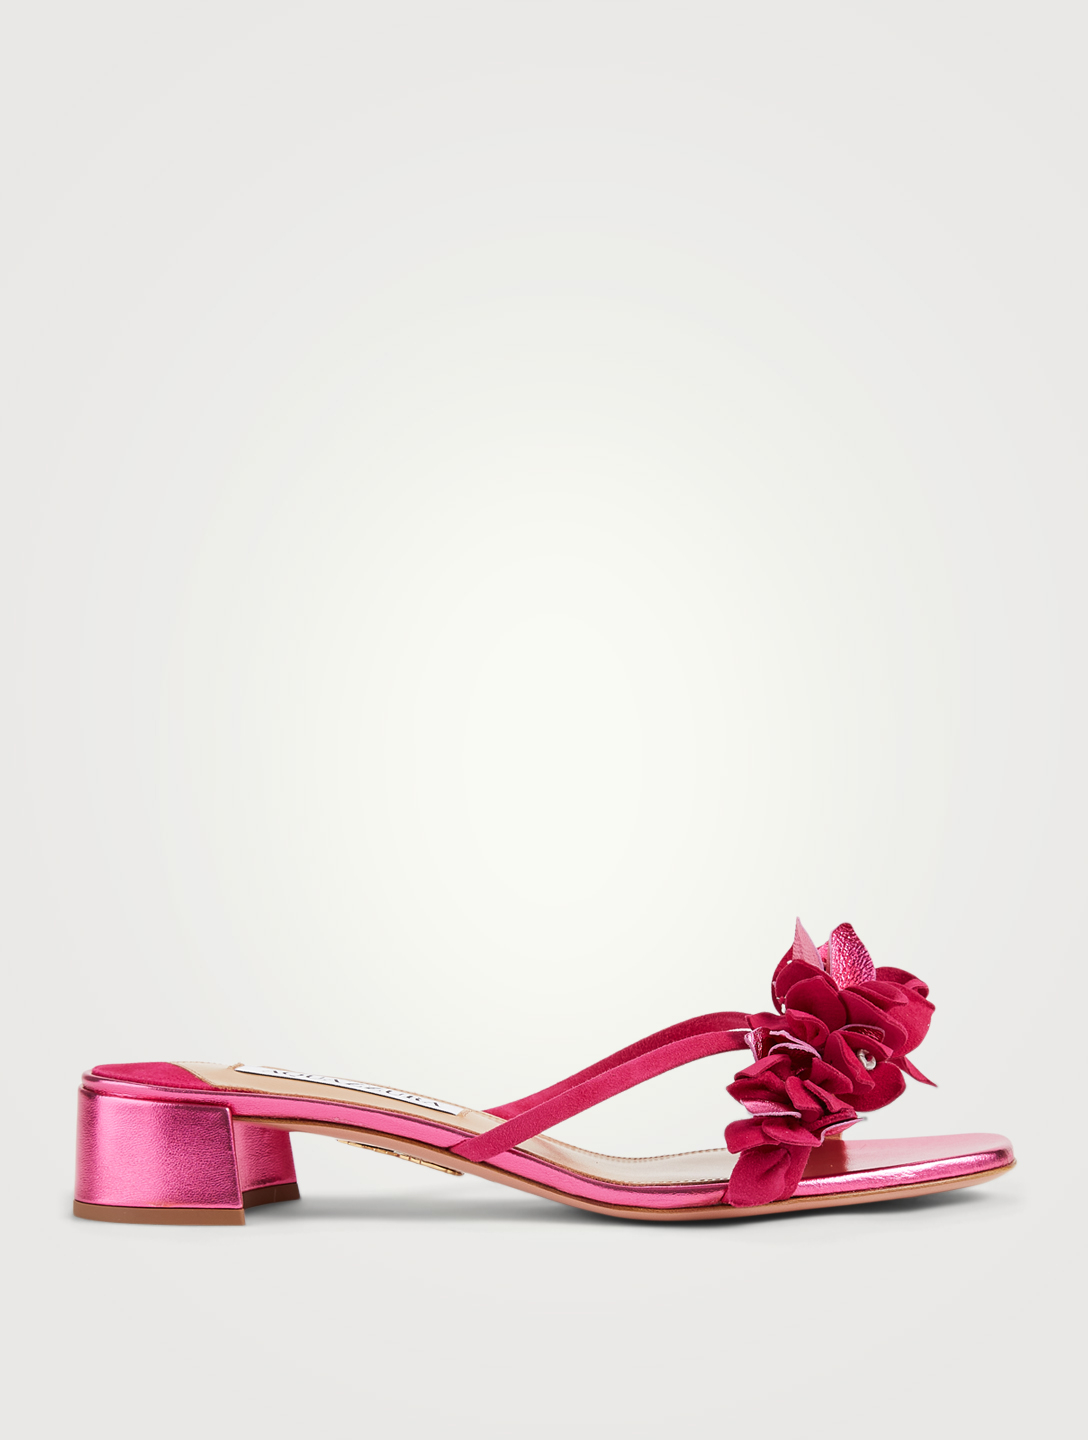 AQUAZZURA Bougainvillea Metallic Leather And Suede Heeled Slide Sandals Women's Pink